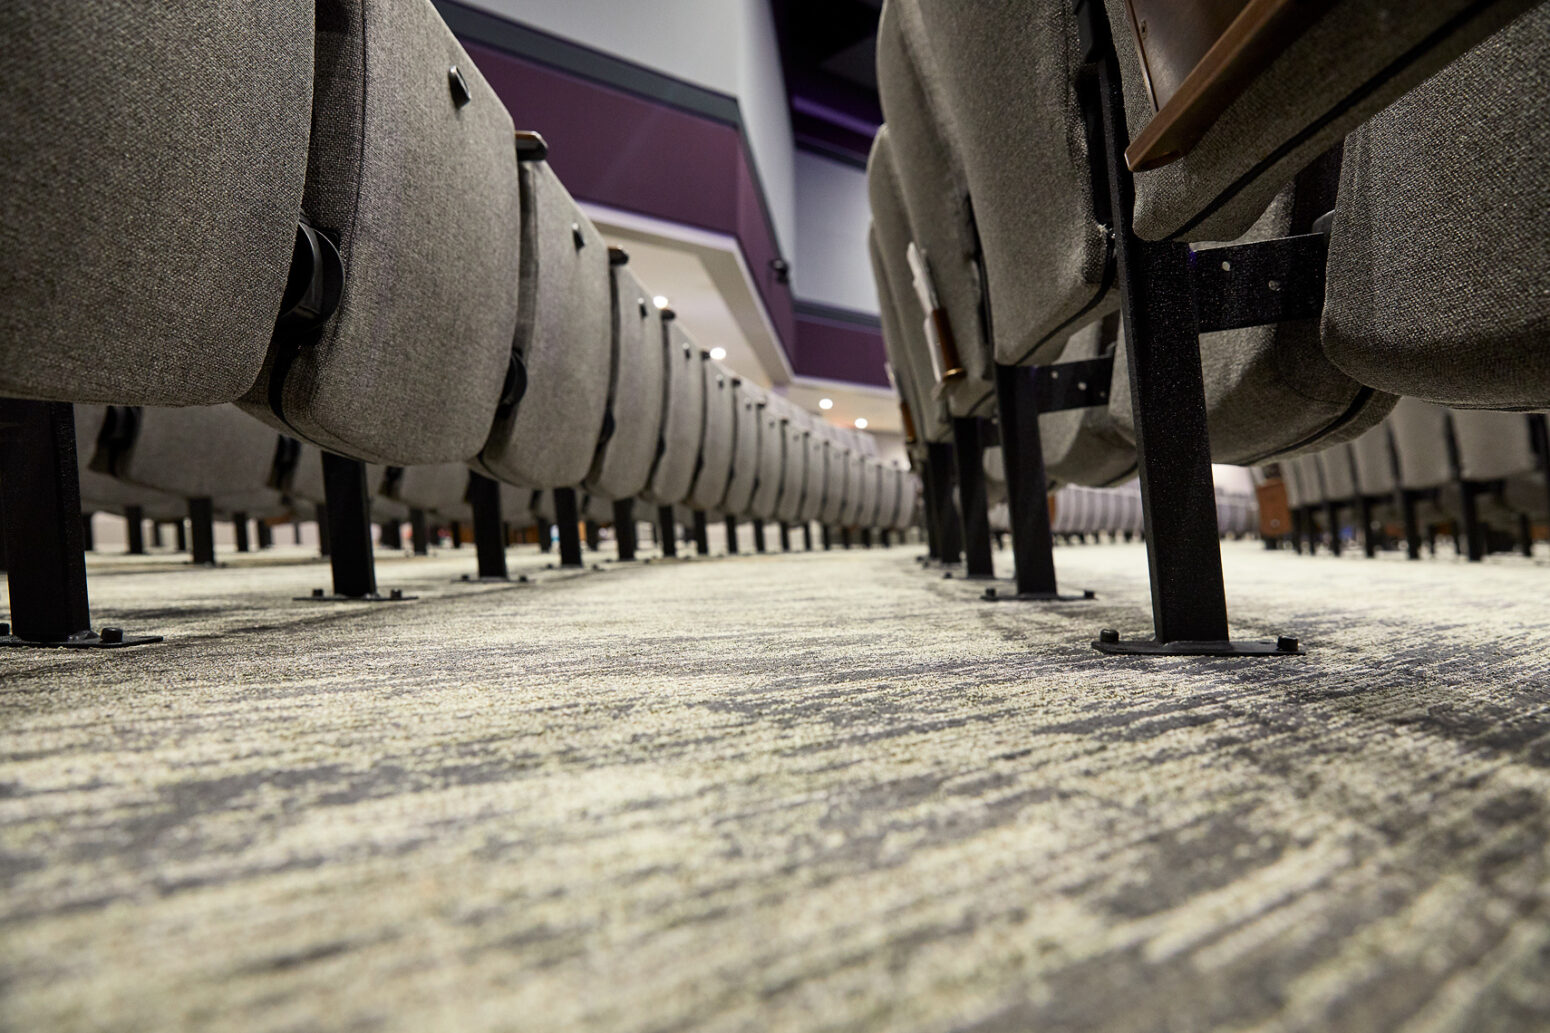 Flooring for an auditorium design project completed by Paragon 360.